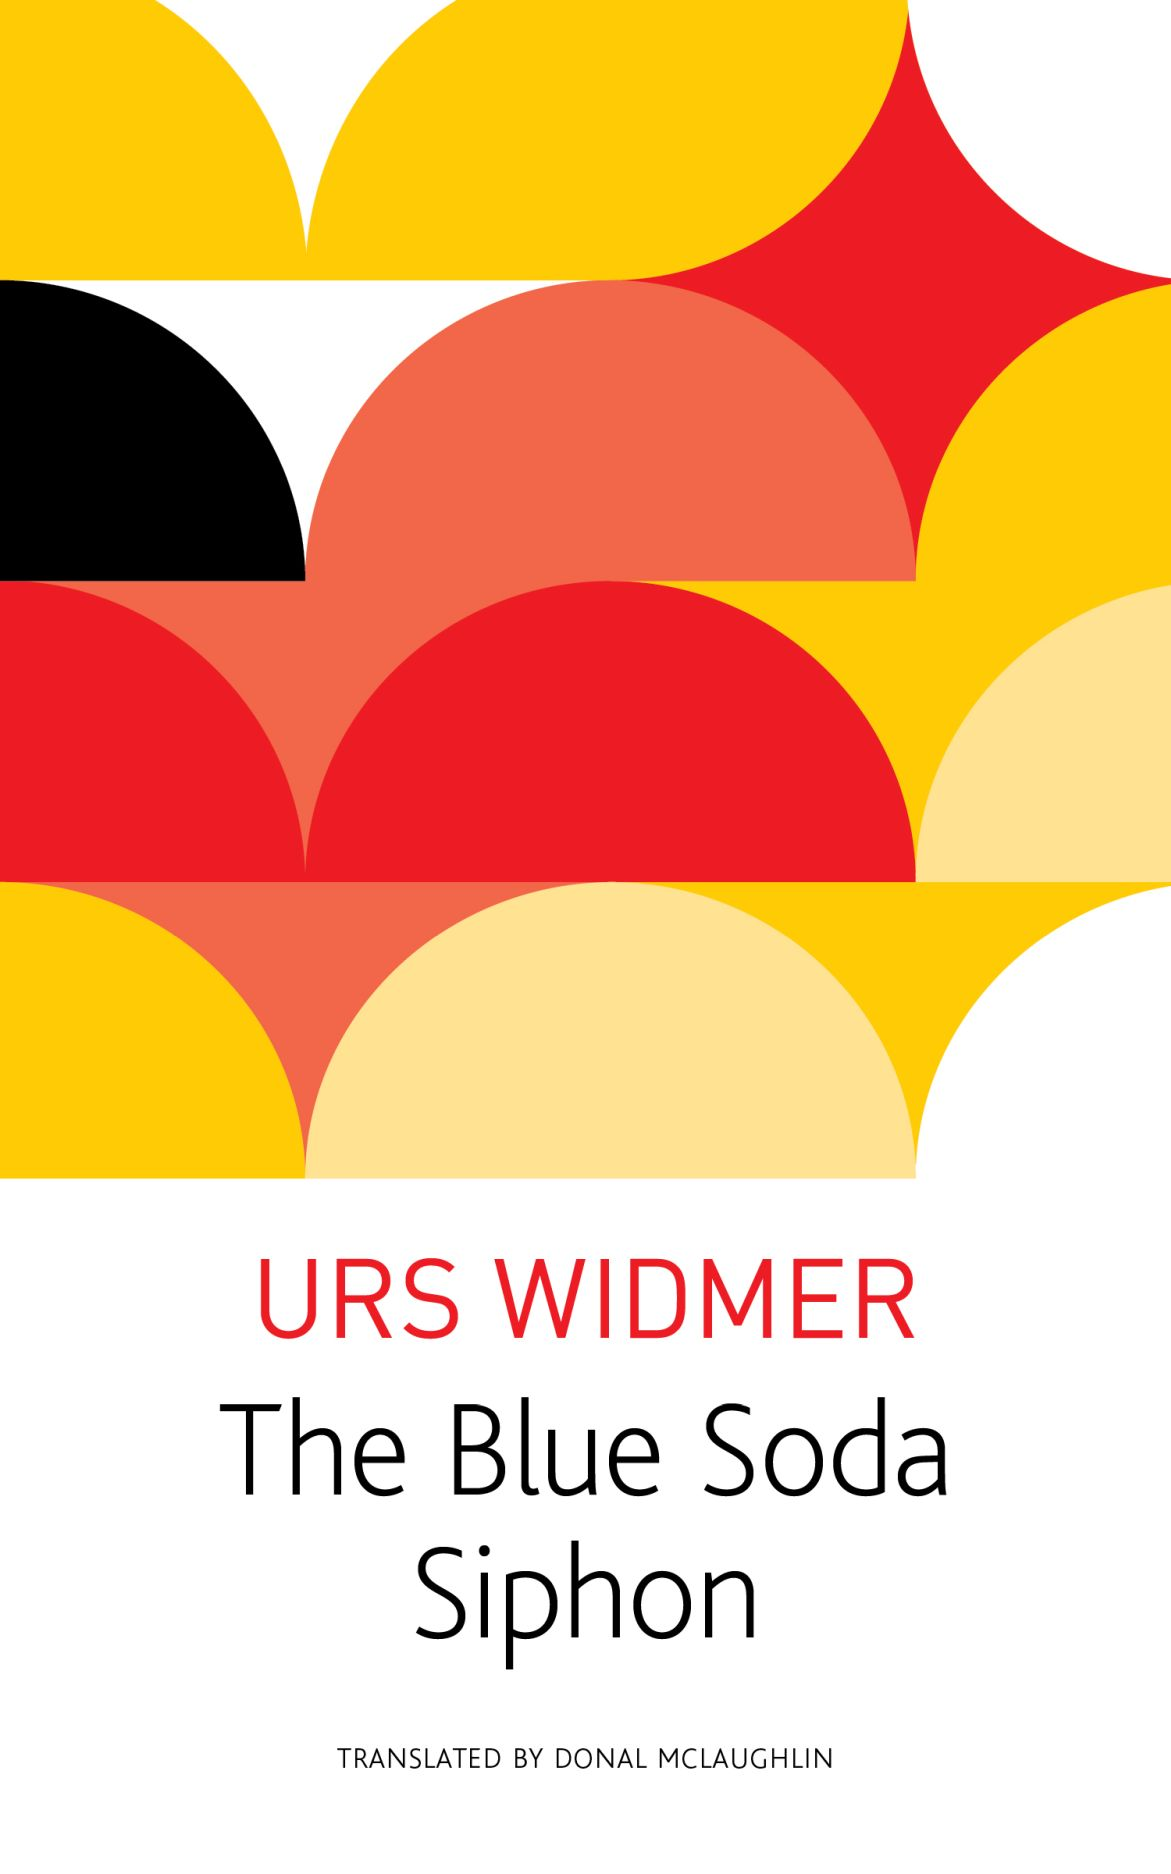 The Blue Soda Siphon